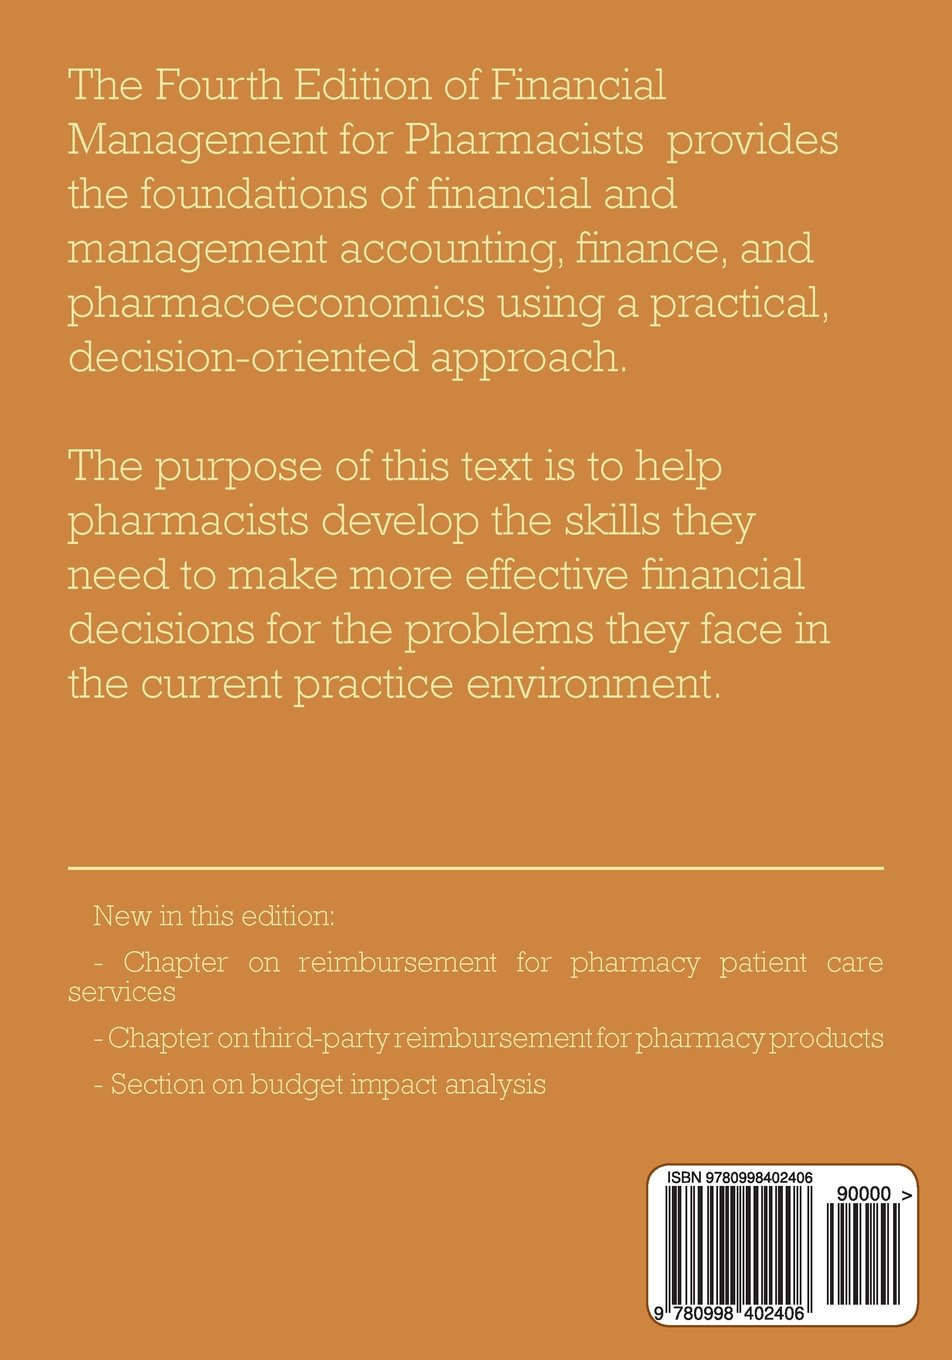 Financial management for pharmacists a decision making approach financial management for pharmacists a decision making approach norman v carroll phd 9780998402406 amazon books fandeluxe Choice Image